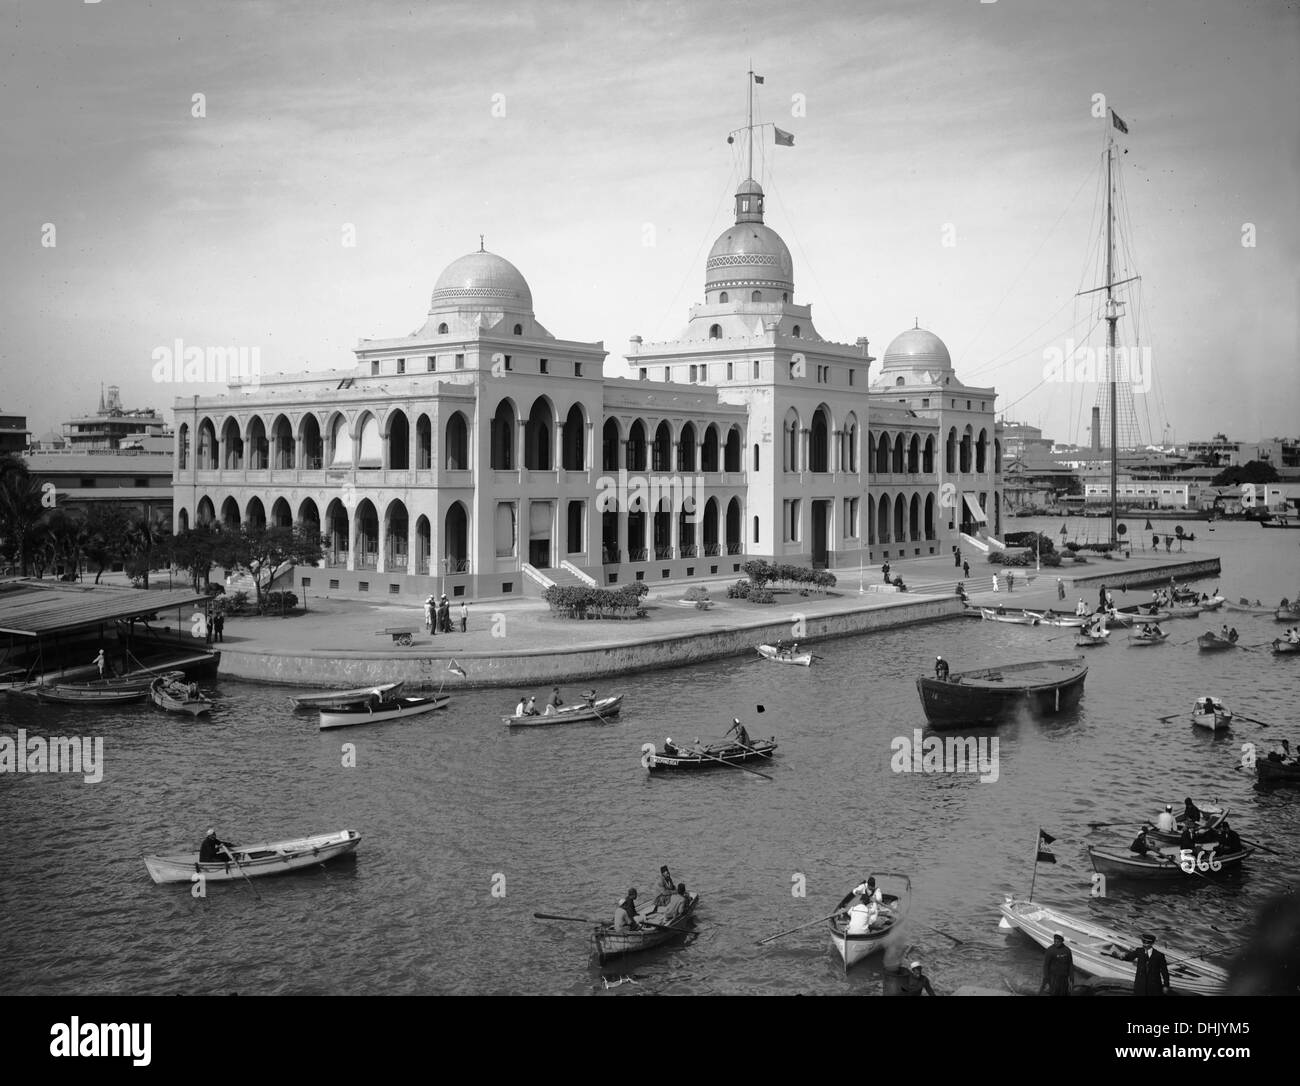 View of an office building on the Suez Canal in Port Said, Egypt, between 1911 and 1913. The image was taken by the German photographer Oswald Lübeck, one of the earliest representatives of travel photography and ship photography aboard passenger ships. Photo: Deutsche Fotothek/Oswald Lübeck. - Stock Image